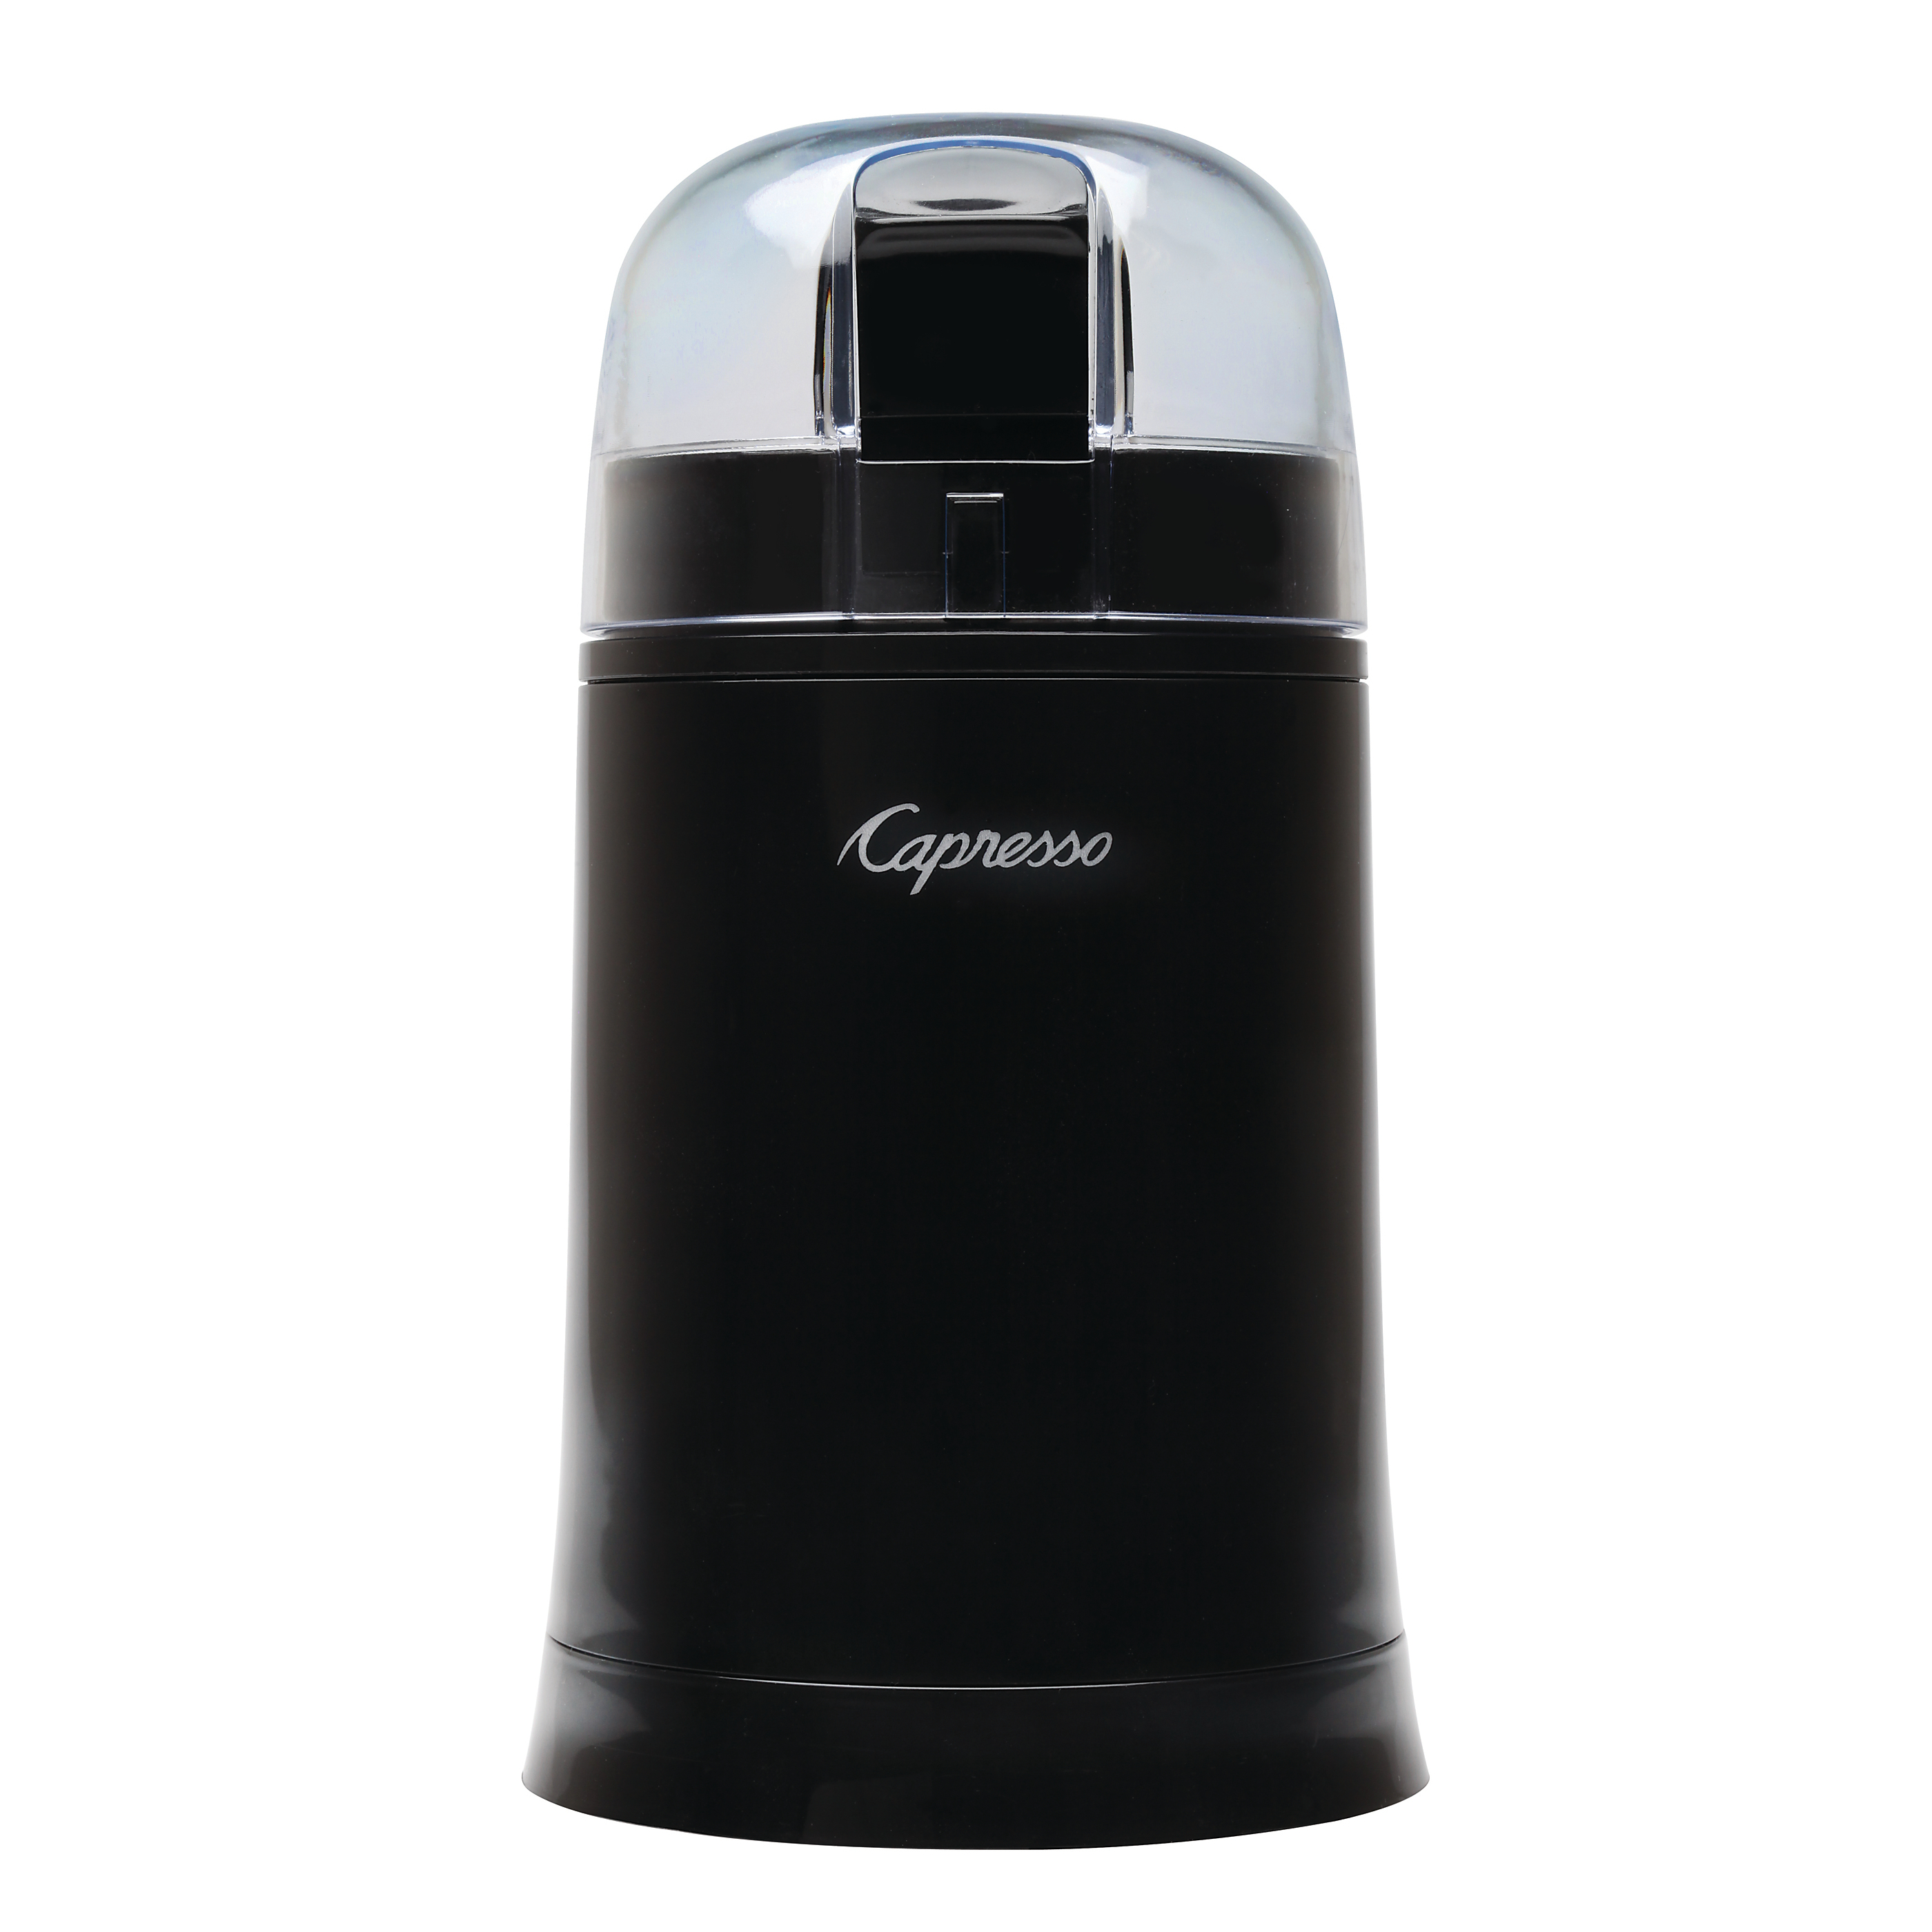 Capresso Black Cool Grind Blade Coffee Grinder